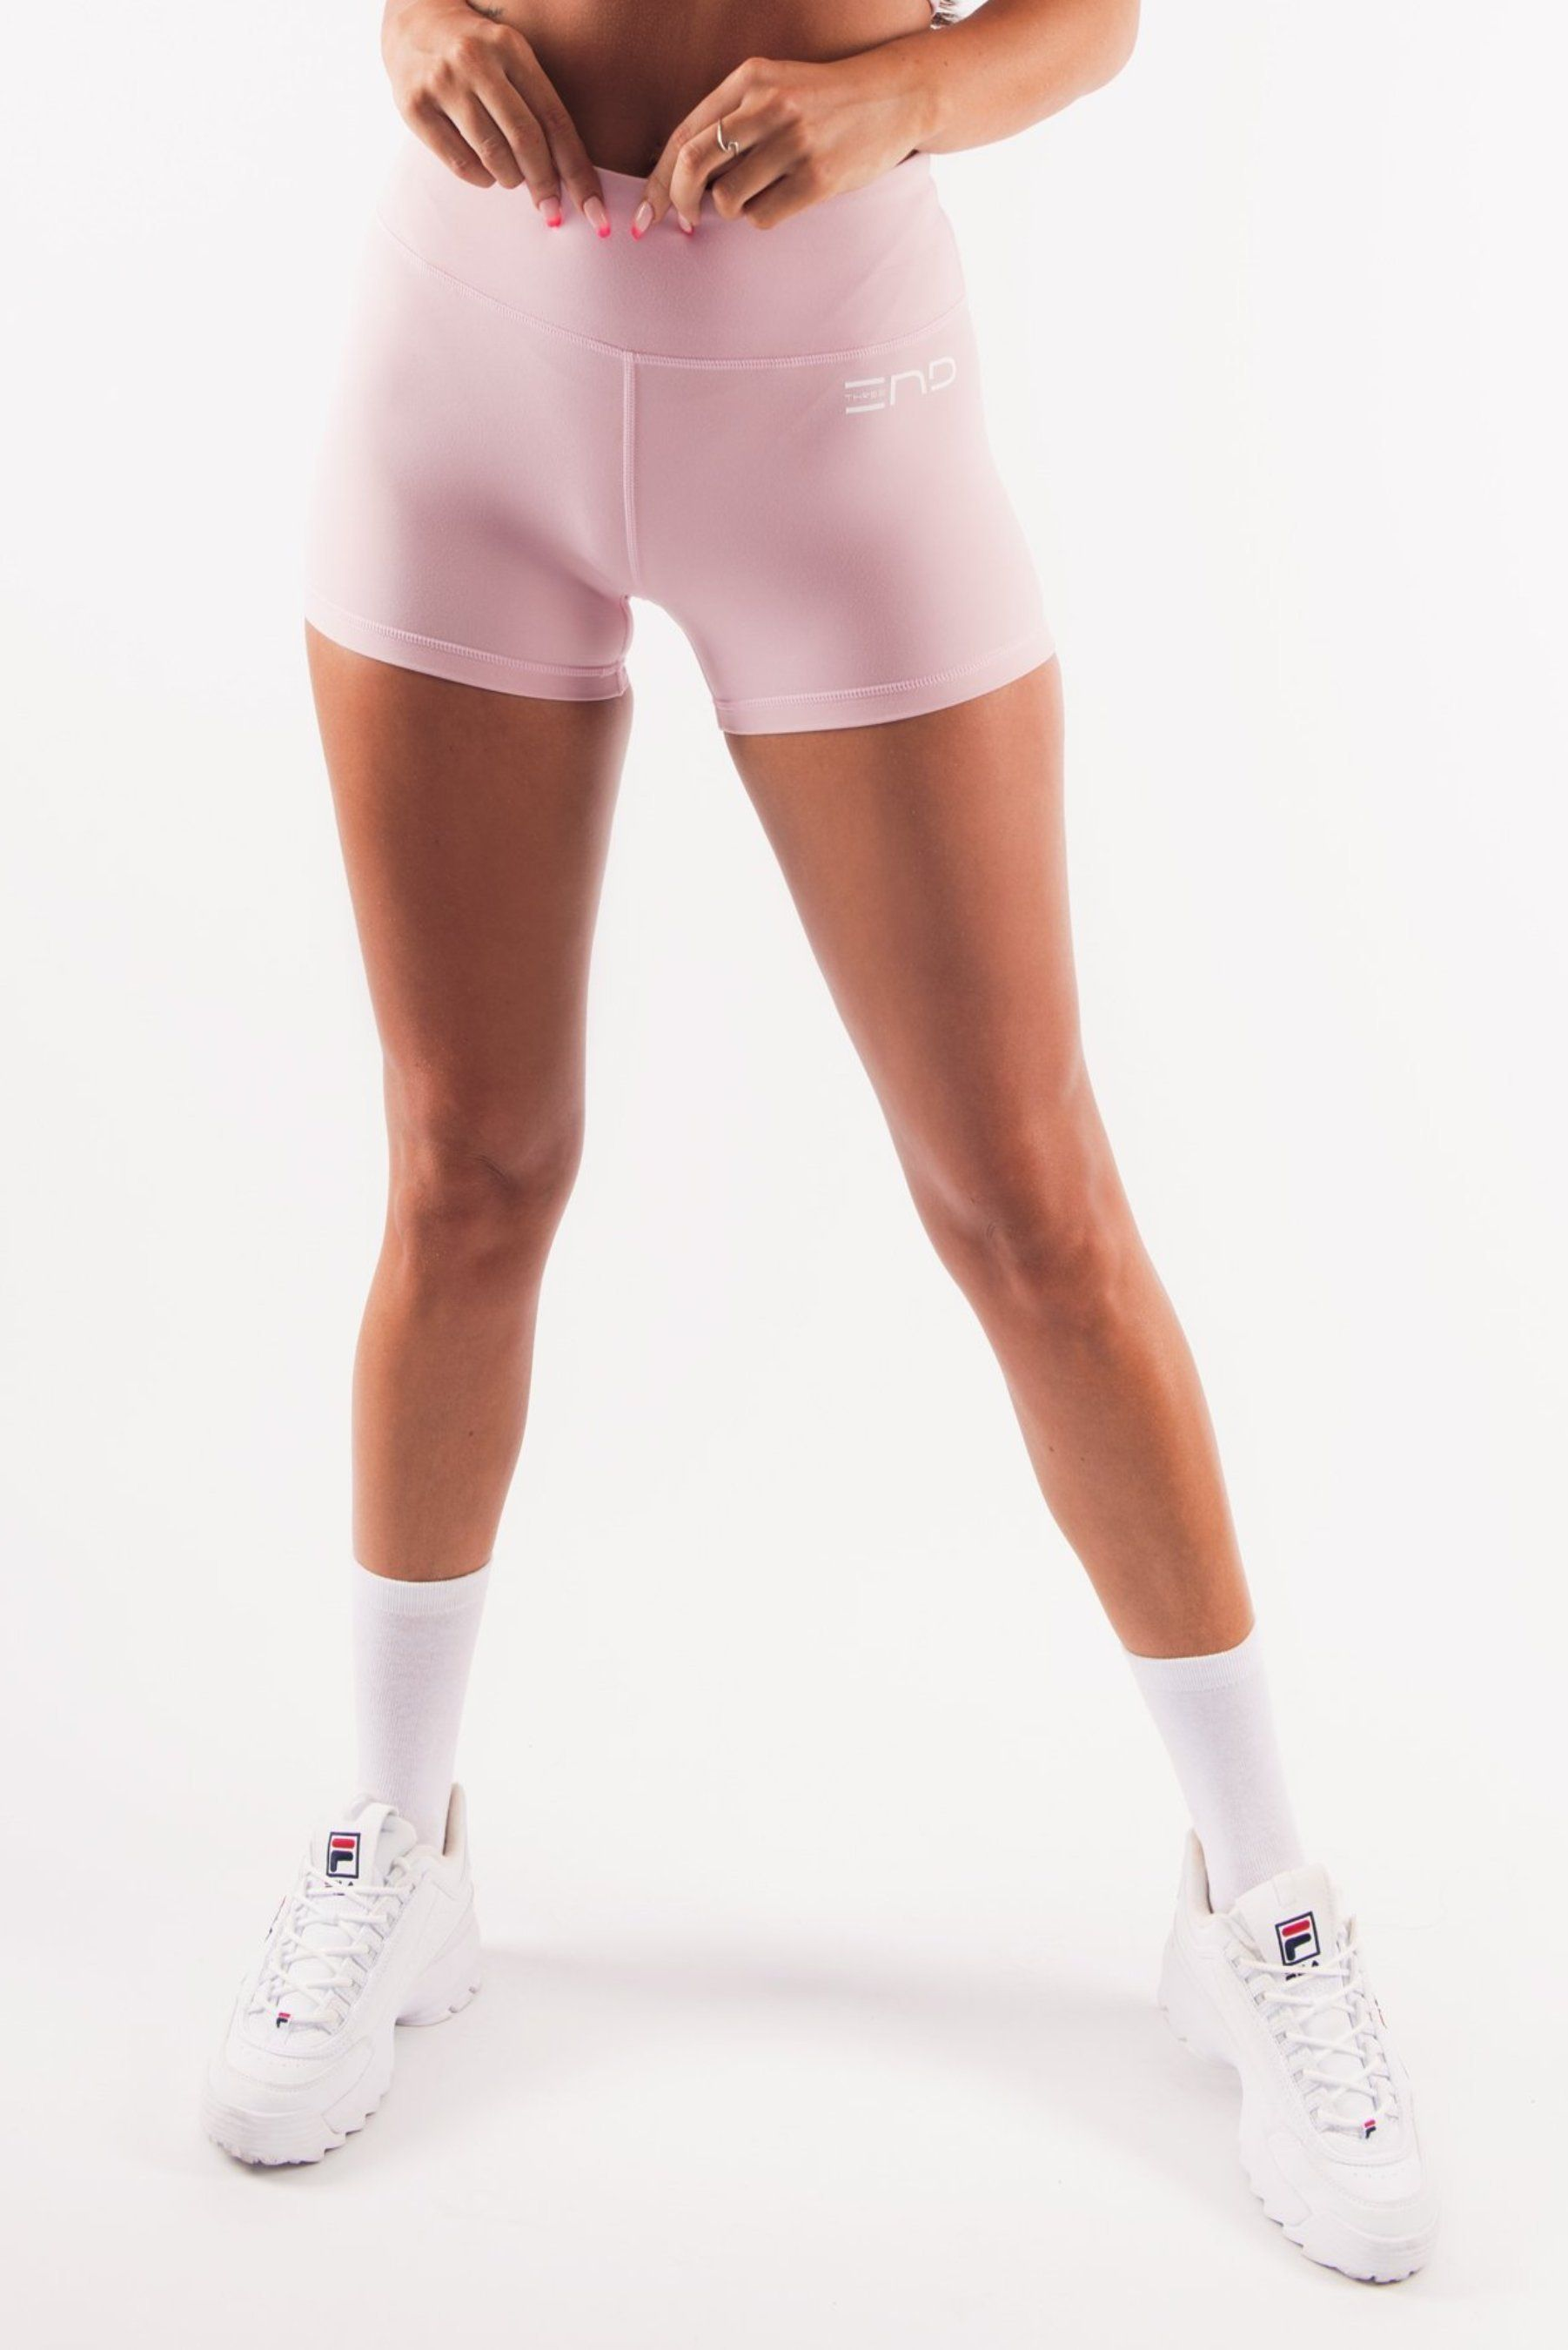 Three End Hyped Booty Shorts - Dusty Pink